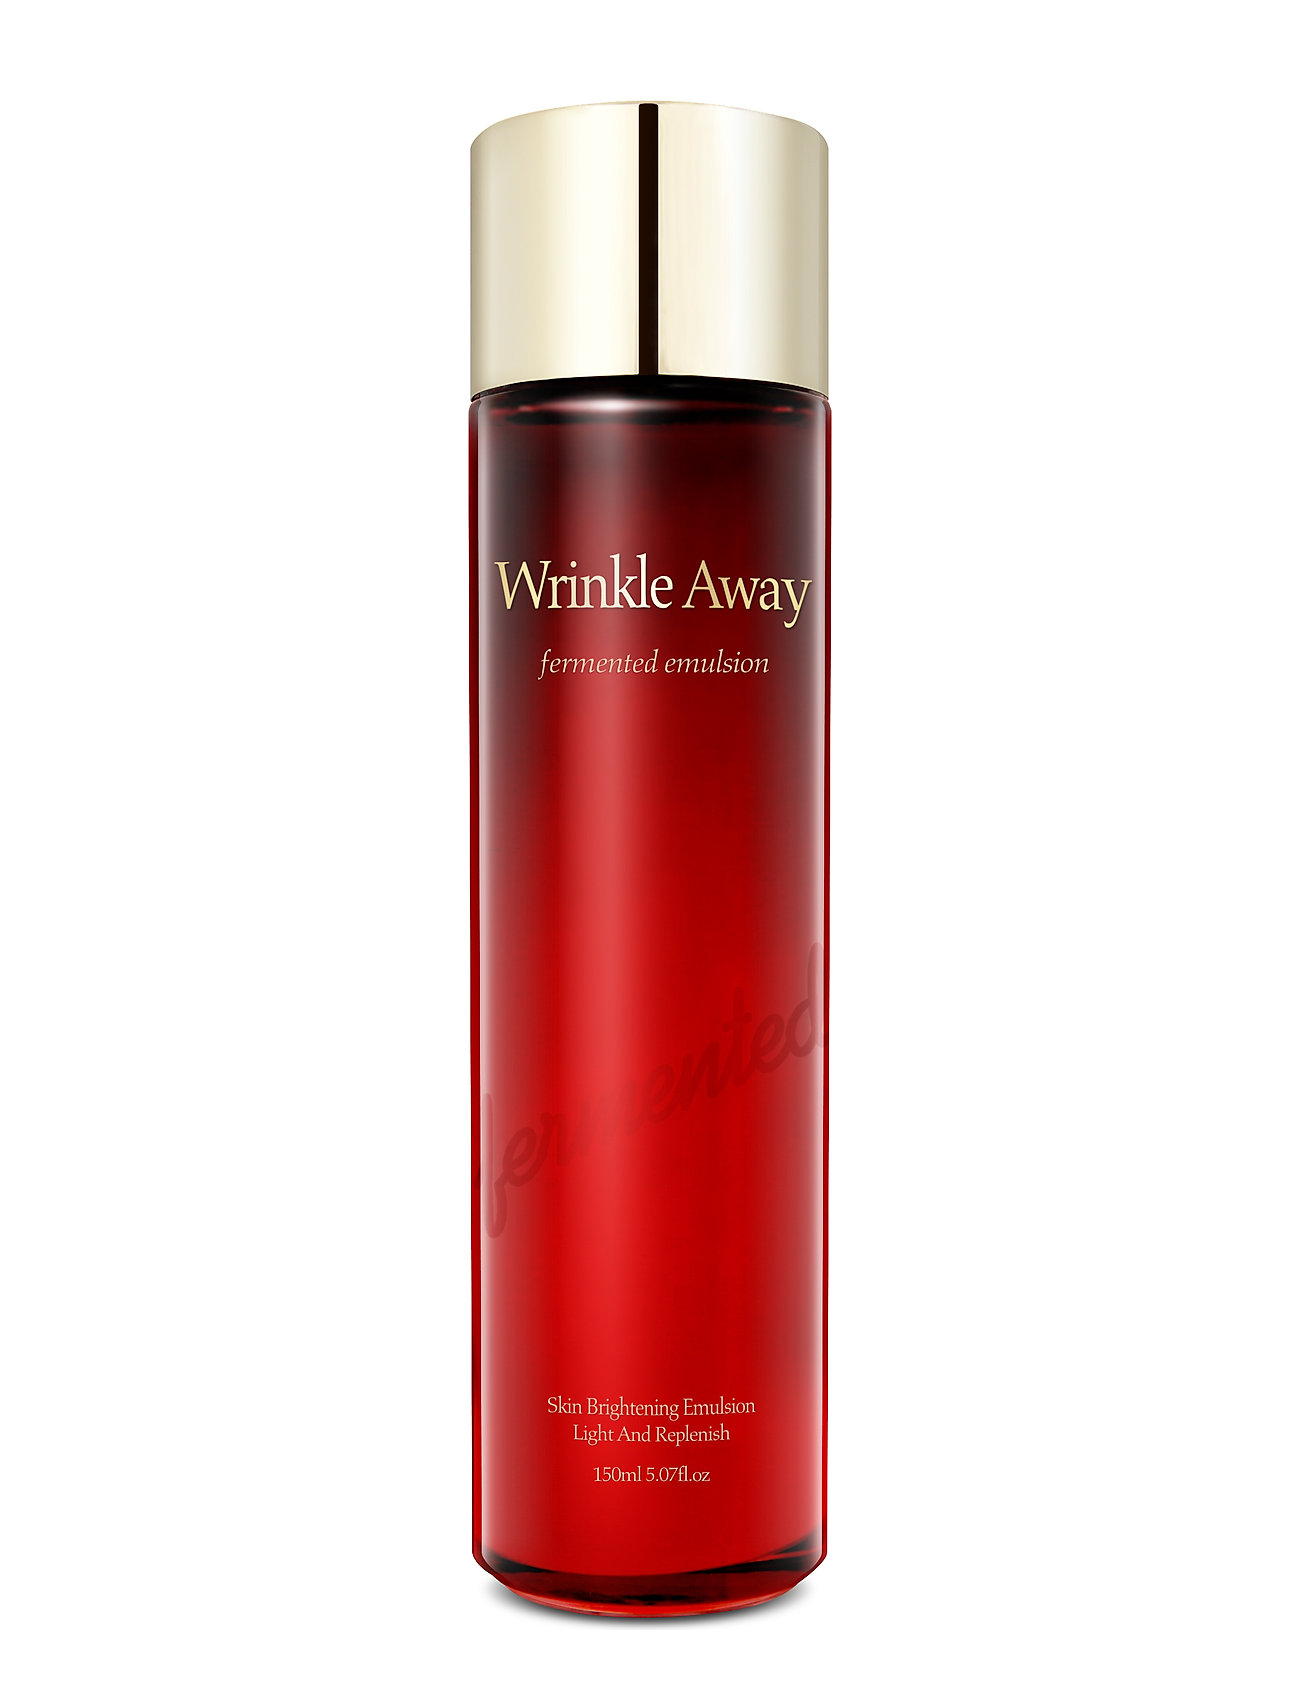 Image of The Skin House Wrinkle Away Fermented Emulsion Hudpleje Ansigtspleje Nude THE SKIN HOUSE (3067546427)